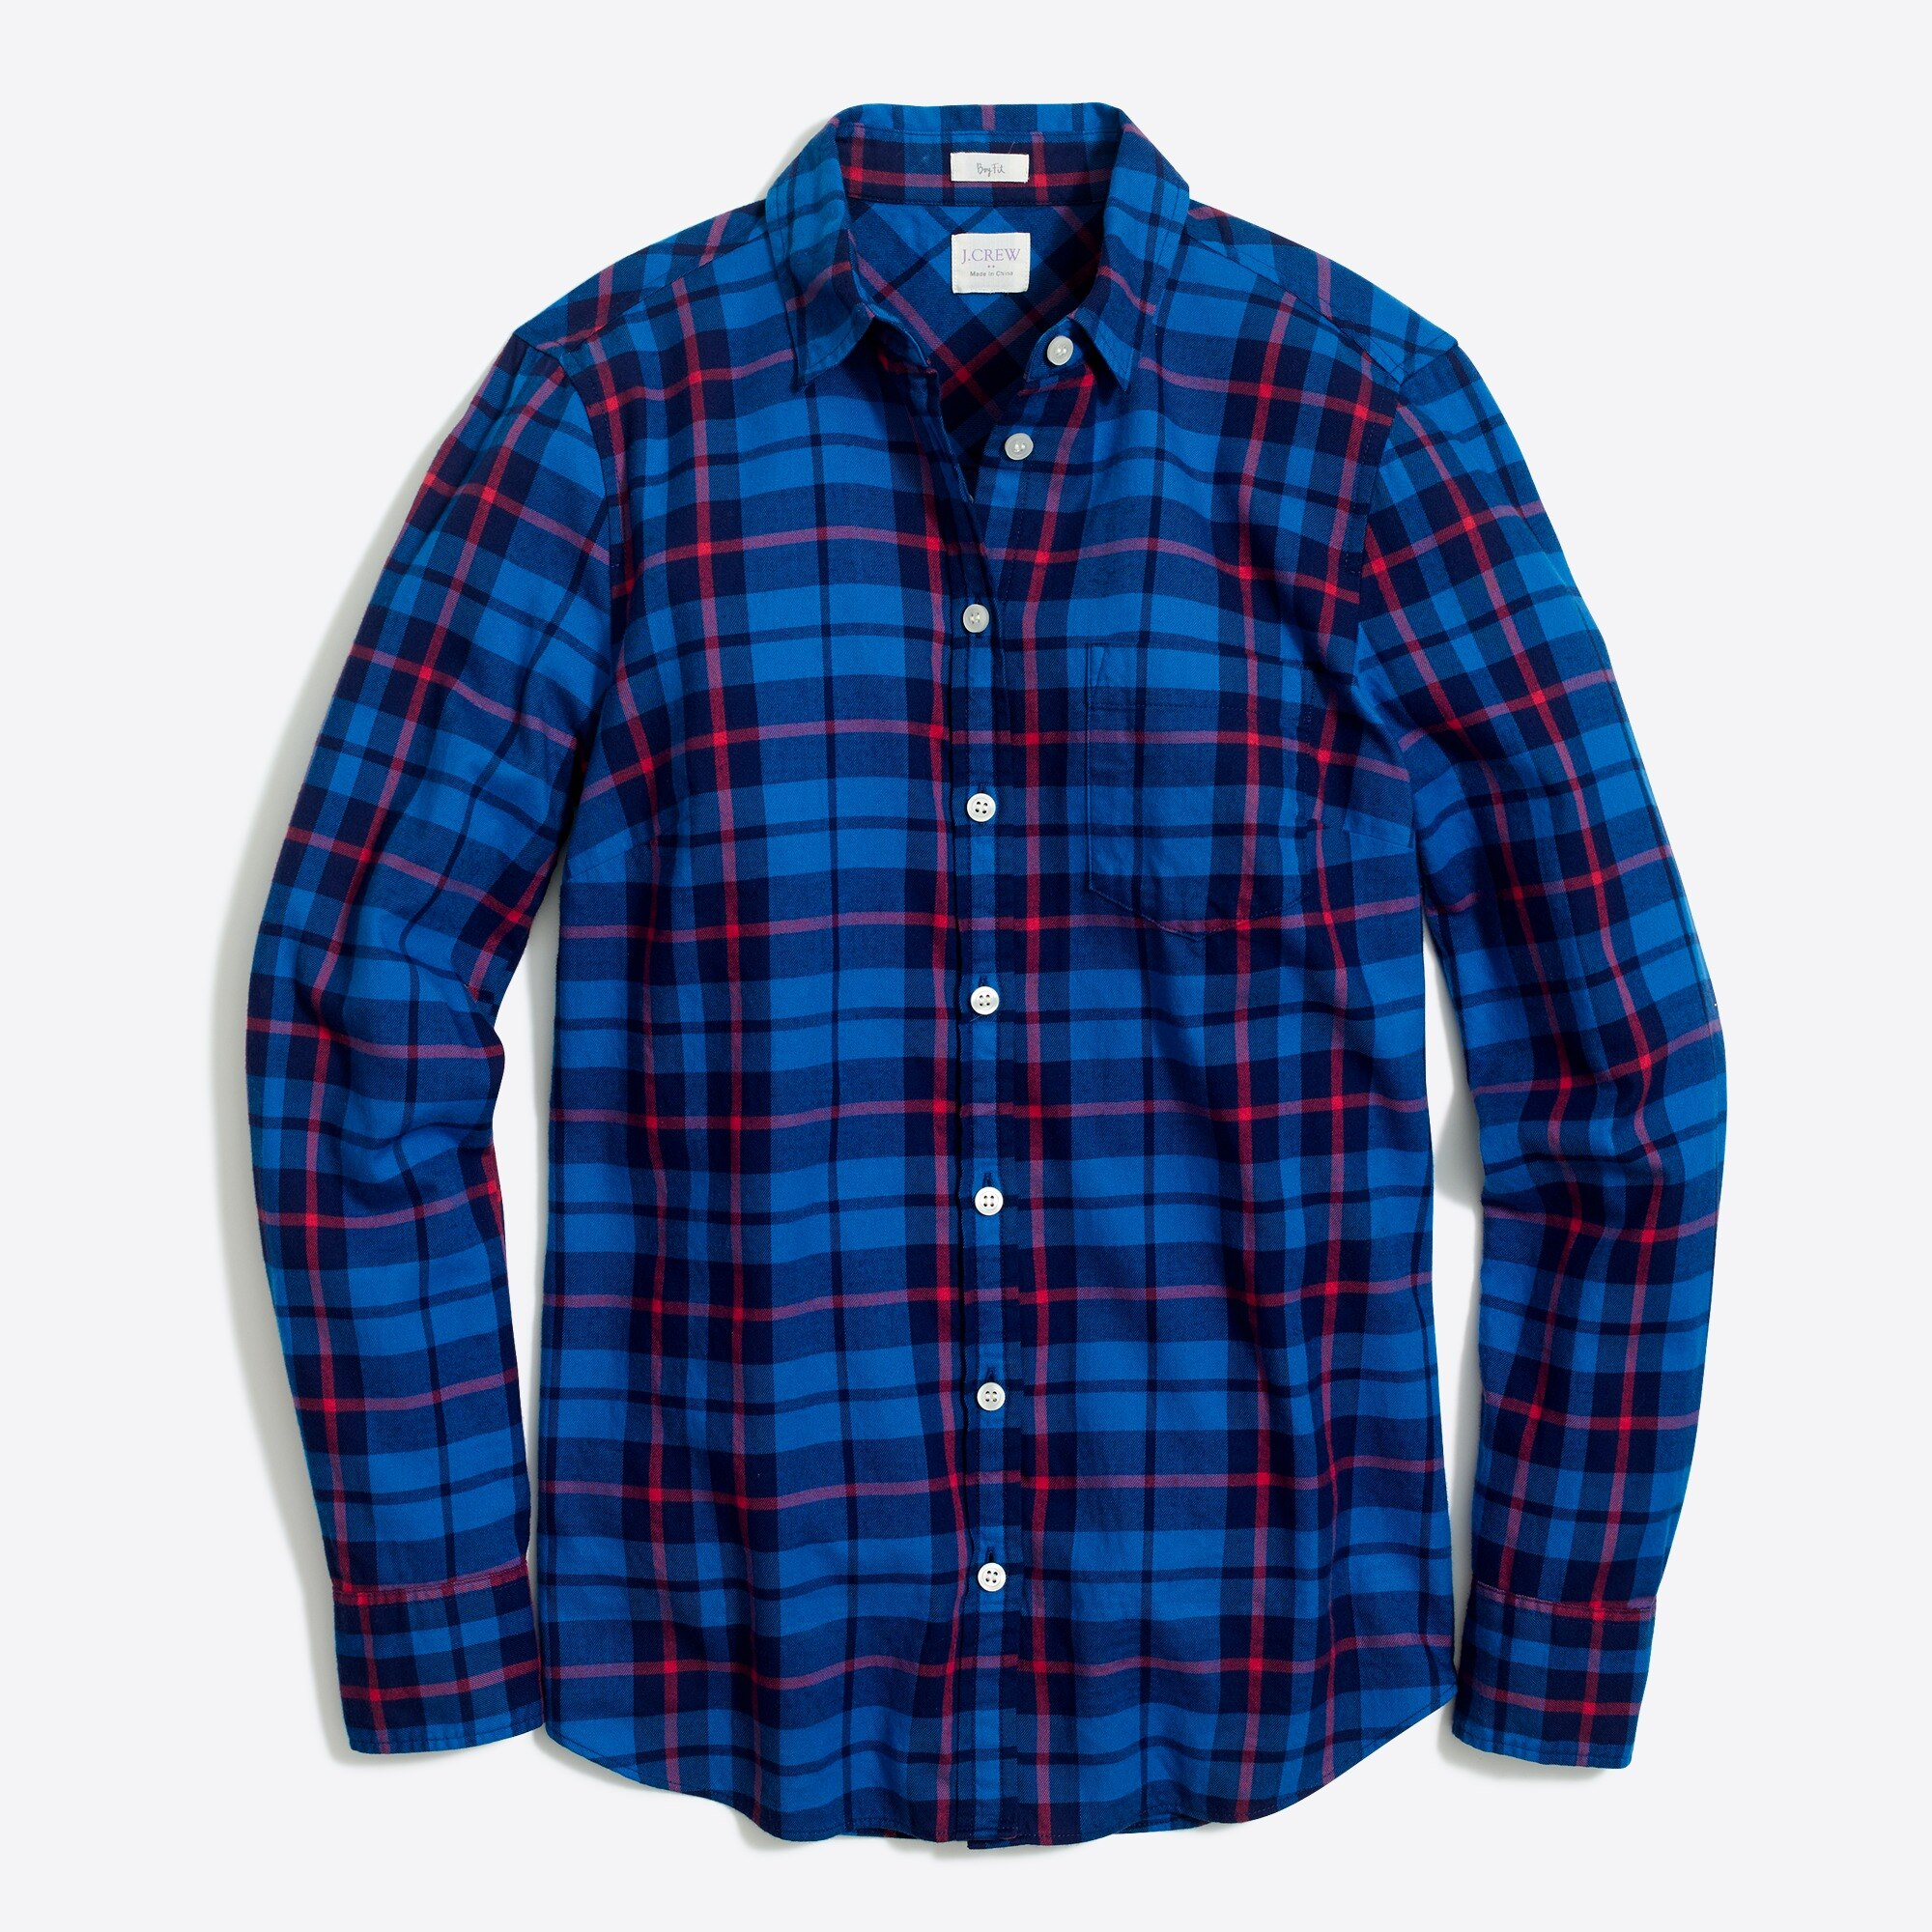 Image 2 for Flannel shirt